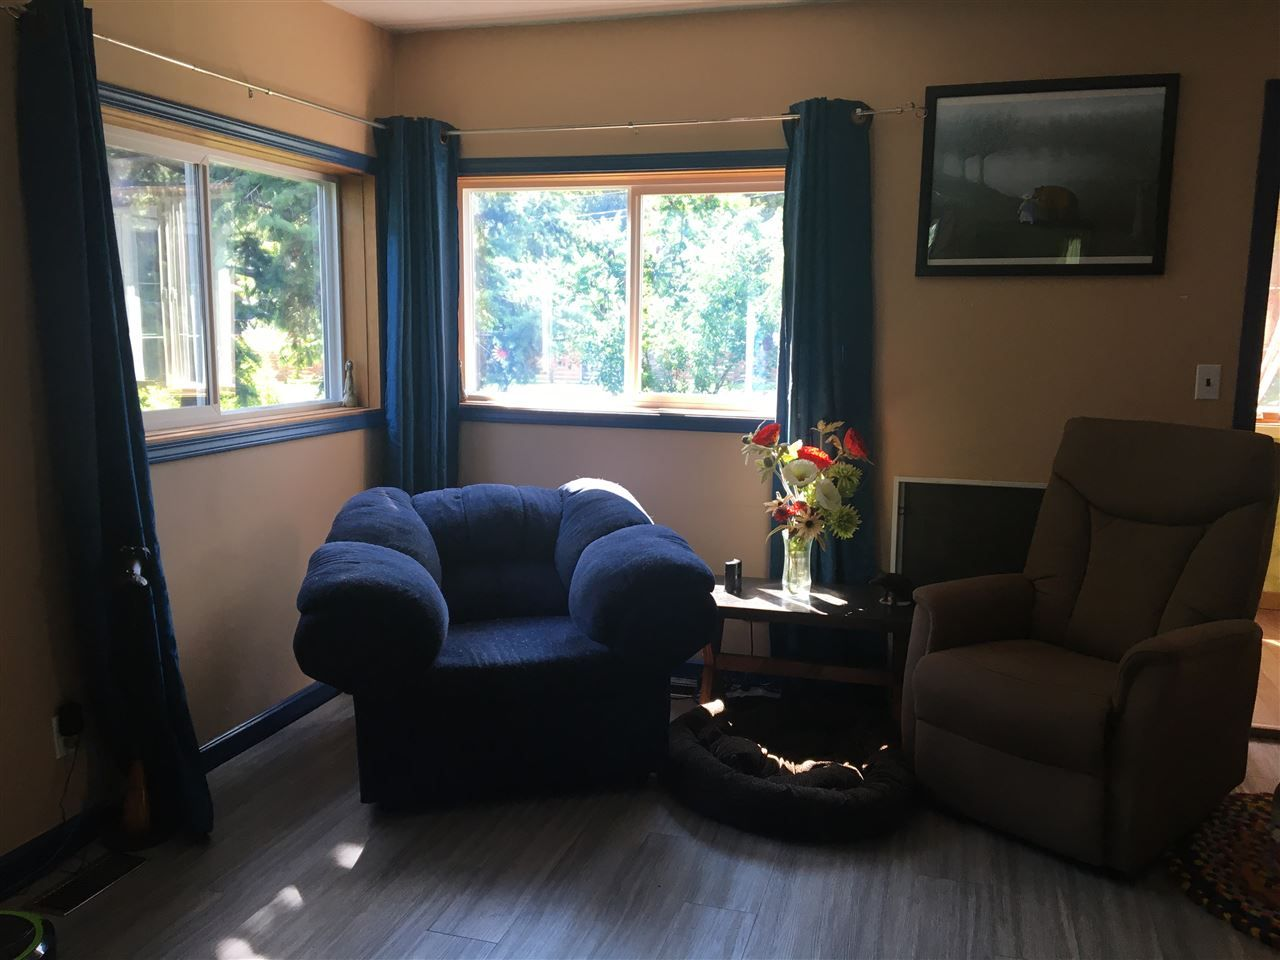 Photo 5: Photos: 230 BAKER Drive in Quesnel: Quesnel - Town House for sale (Quesnel (Zone 28))  : MLS®# R2481471